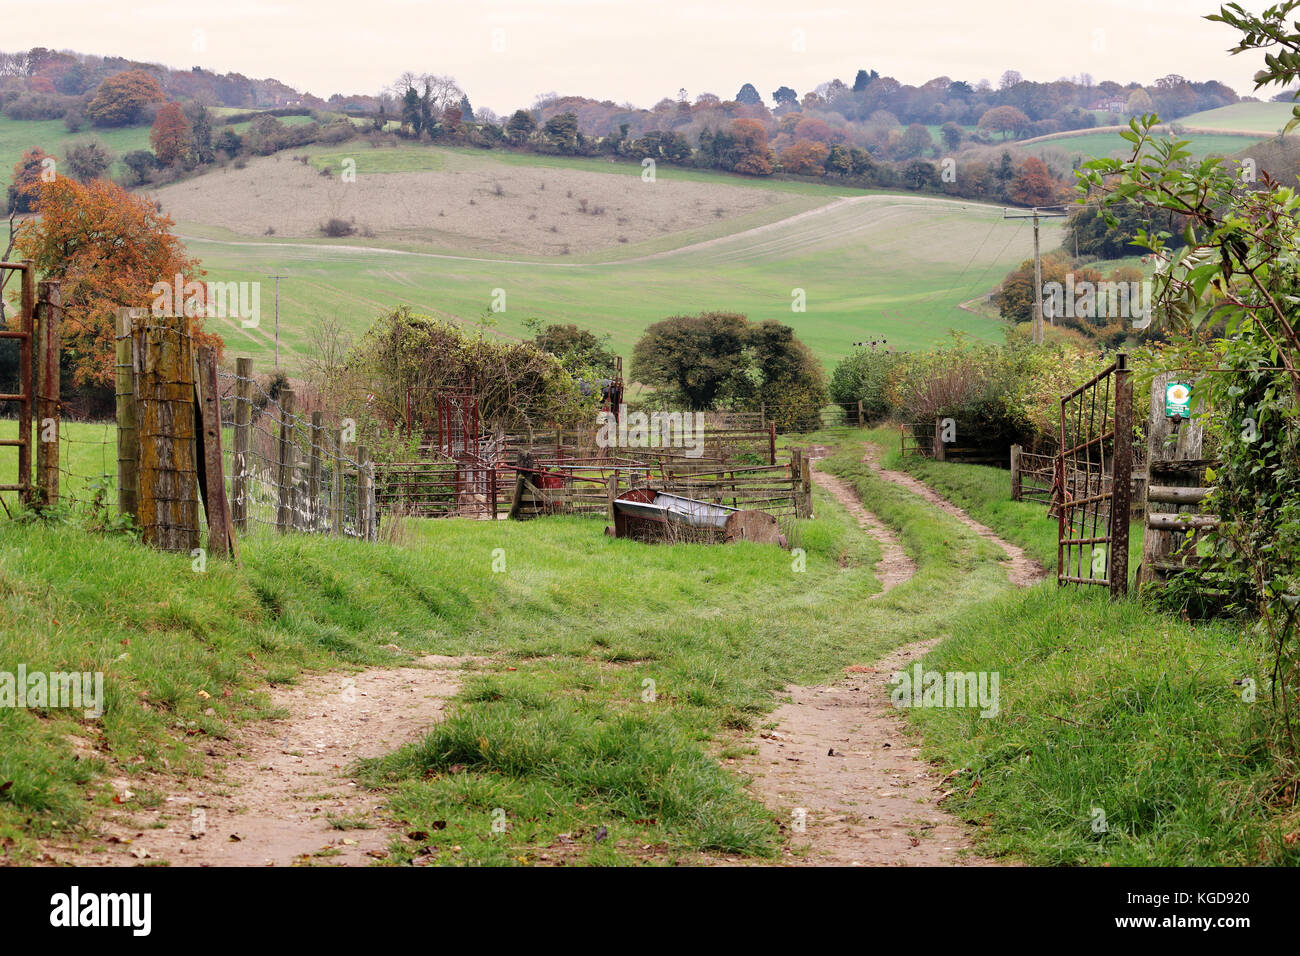 Autumn Landscape in the Chiltern Hills in England with Farm track between fields - Stock Image